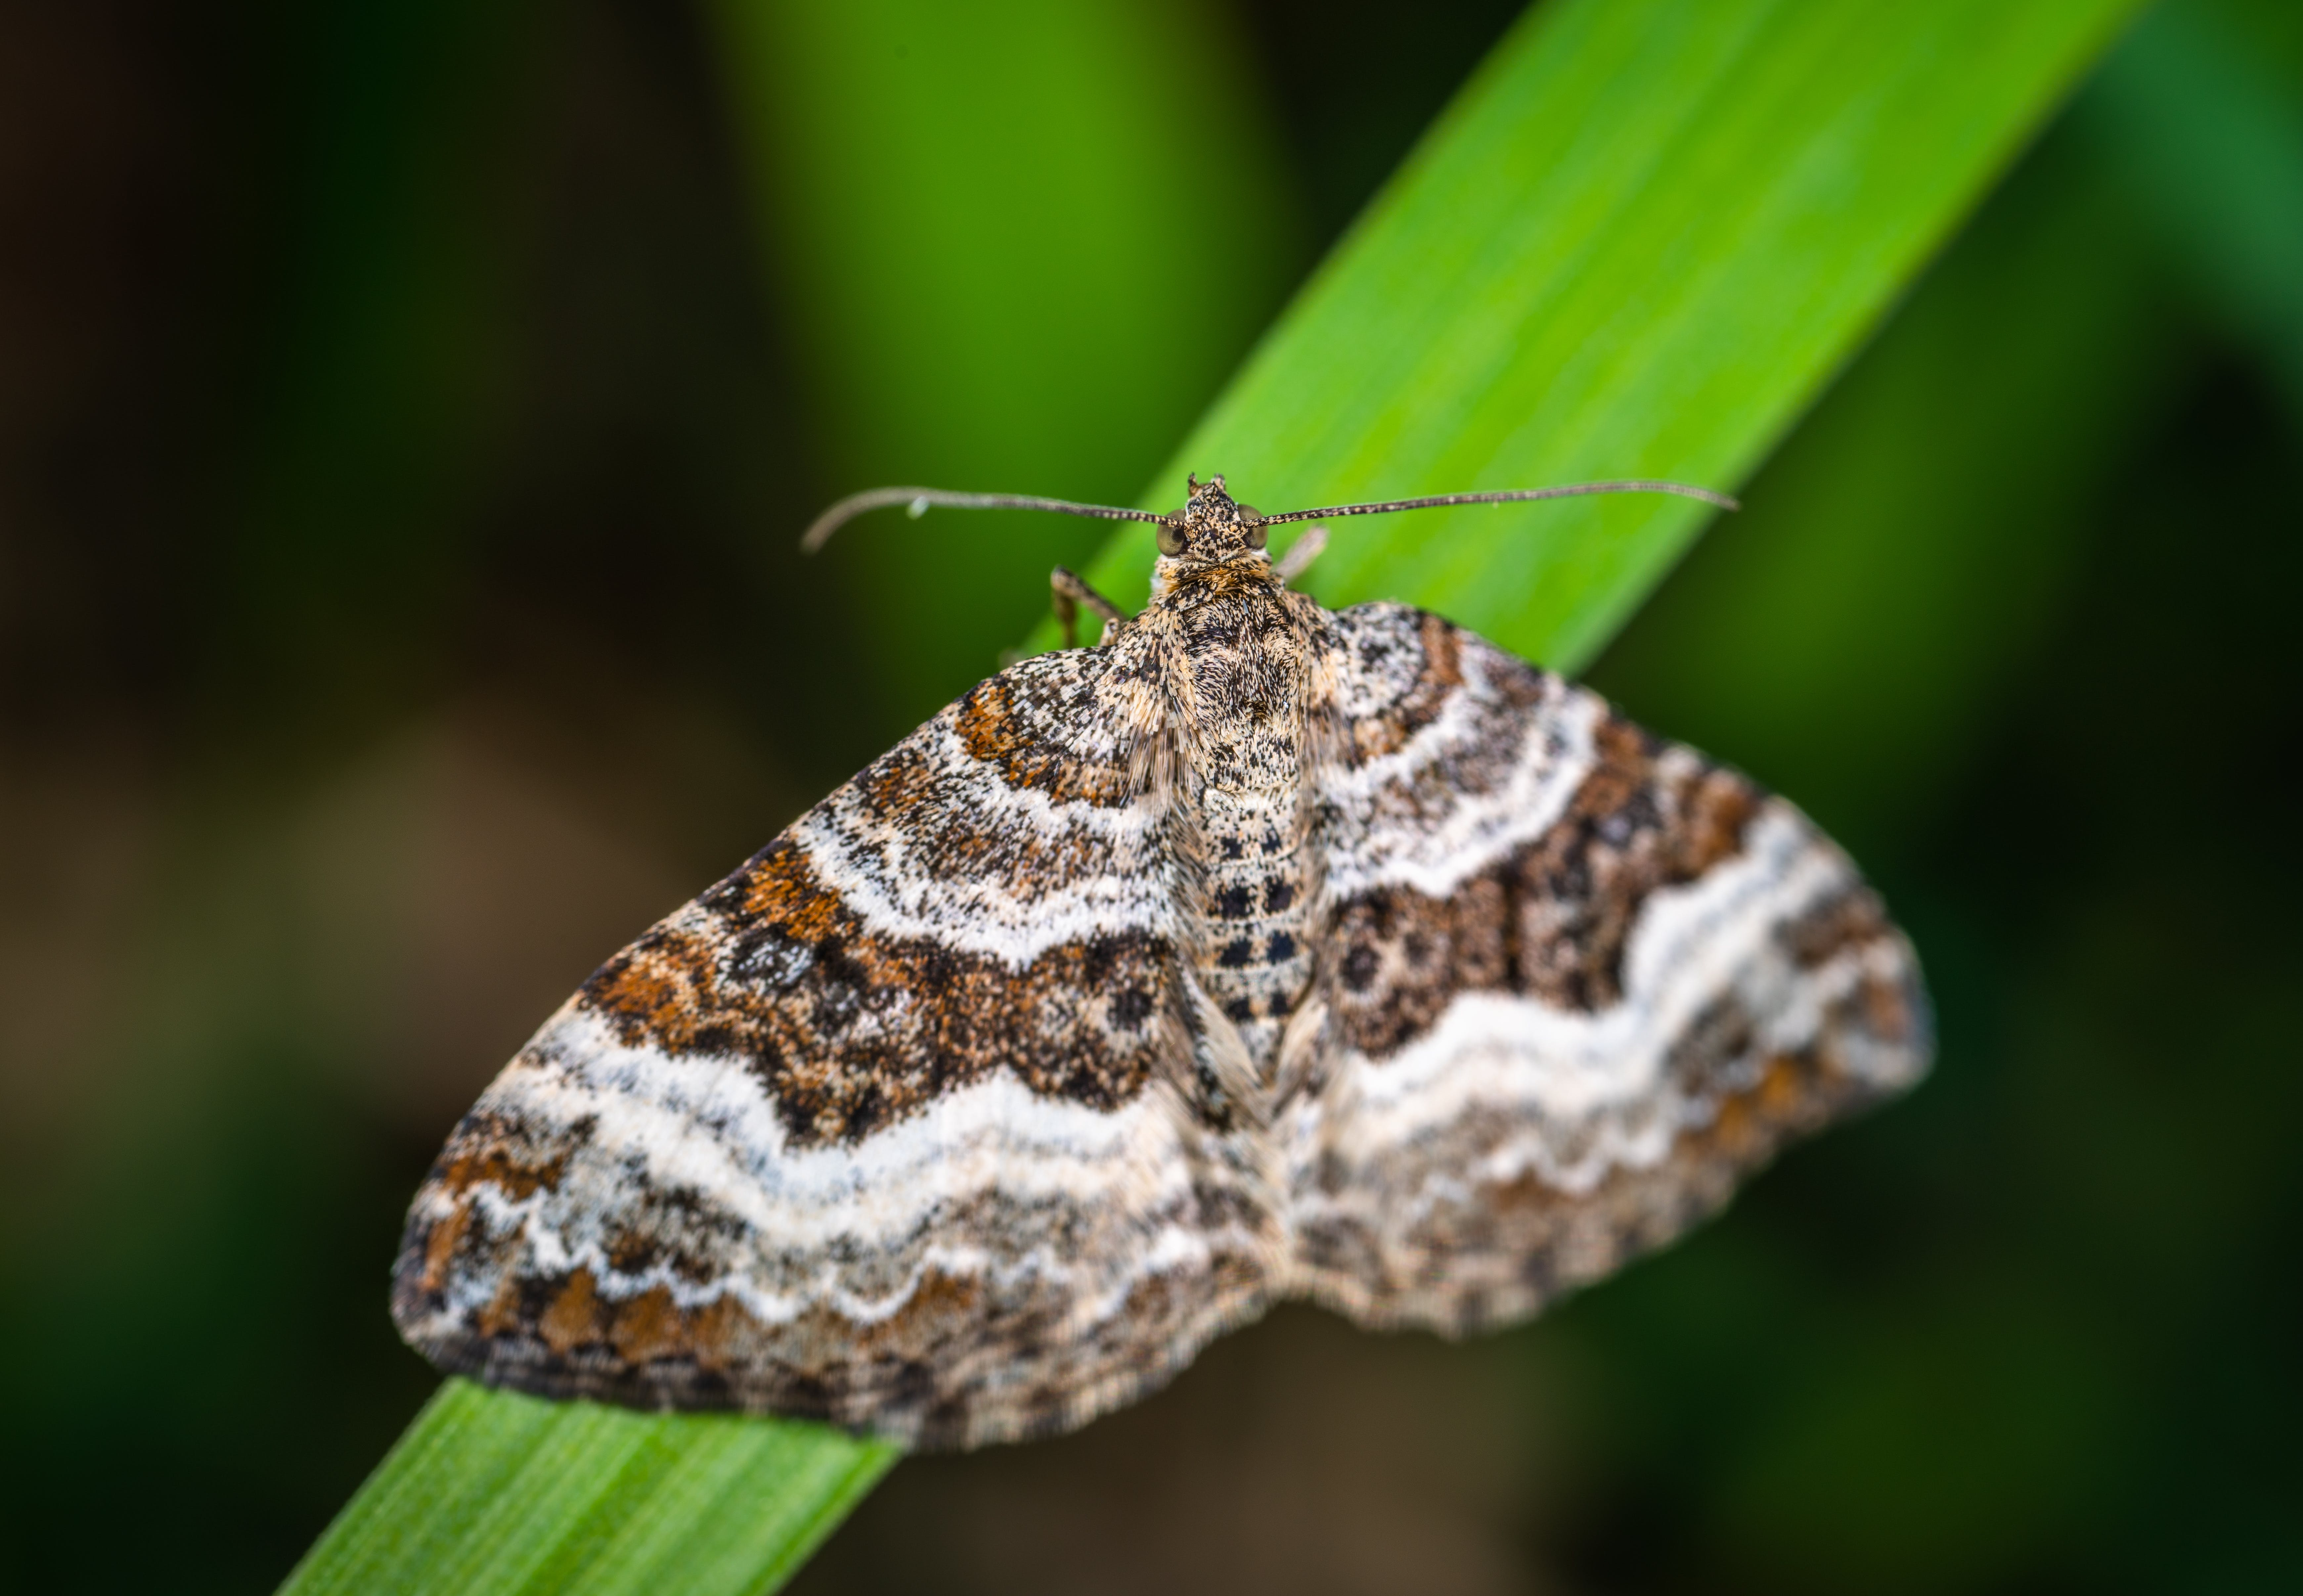 Selective Focus Photography of Gray, Brown, and Black Striped Butterfly Perched on Green Leaf